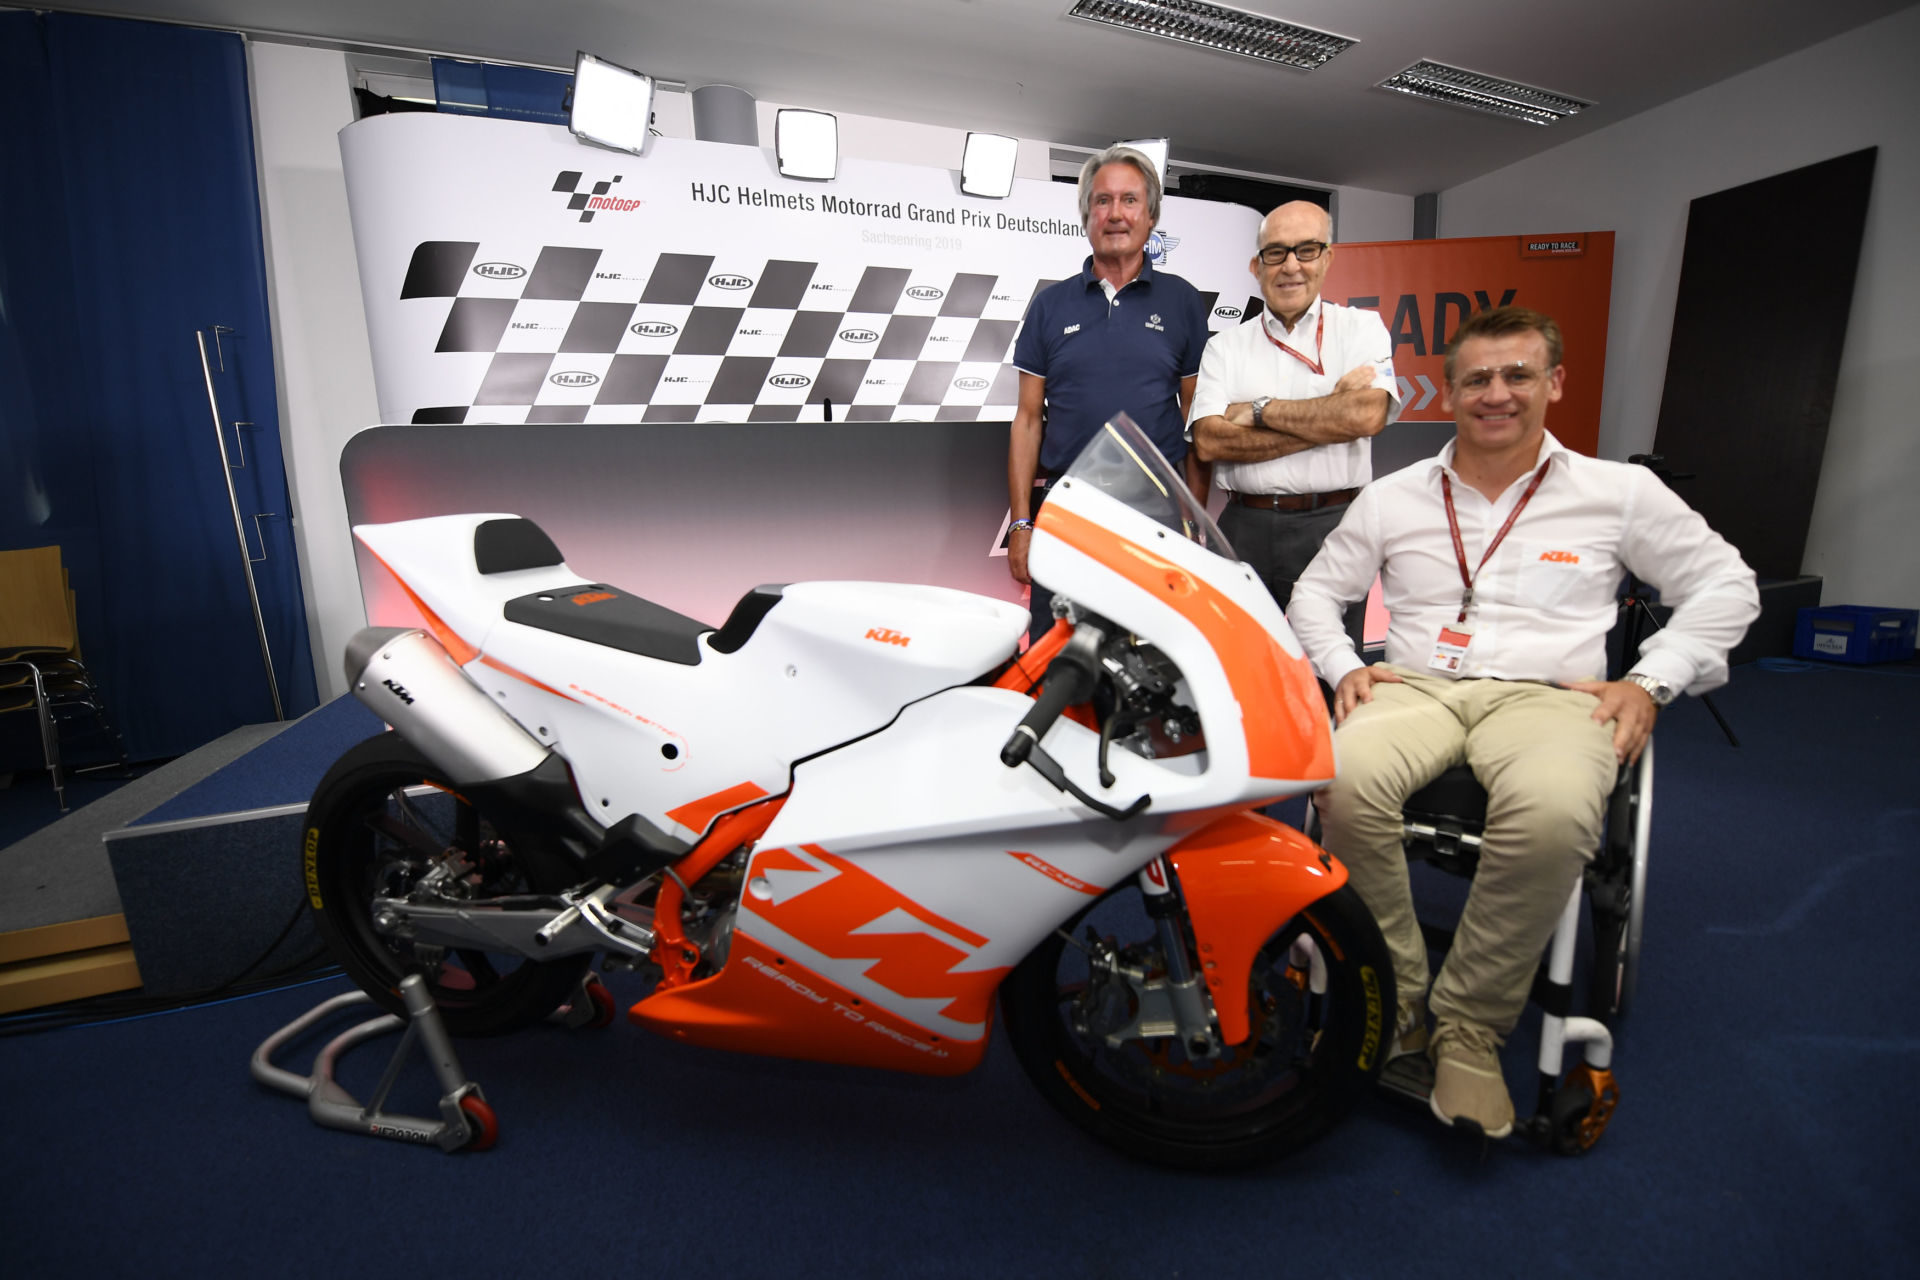 Herman Tomczyk, ADAC Sports President (left); Carmelo Ezpeleta, CEO of Dorna Sports (center); and Pit Beirer, KTM Motorsports Director (right), with a KTM RC4R racebike at the announcement of the Northern Talent Cup. Photo courtesy of Dorna.